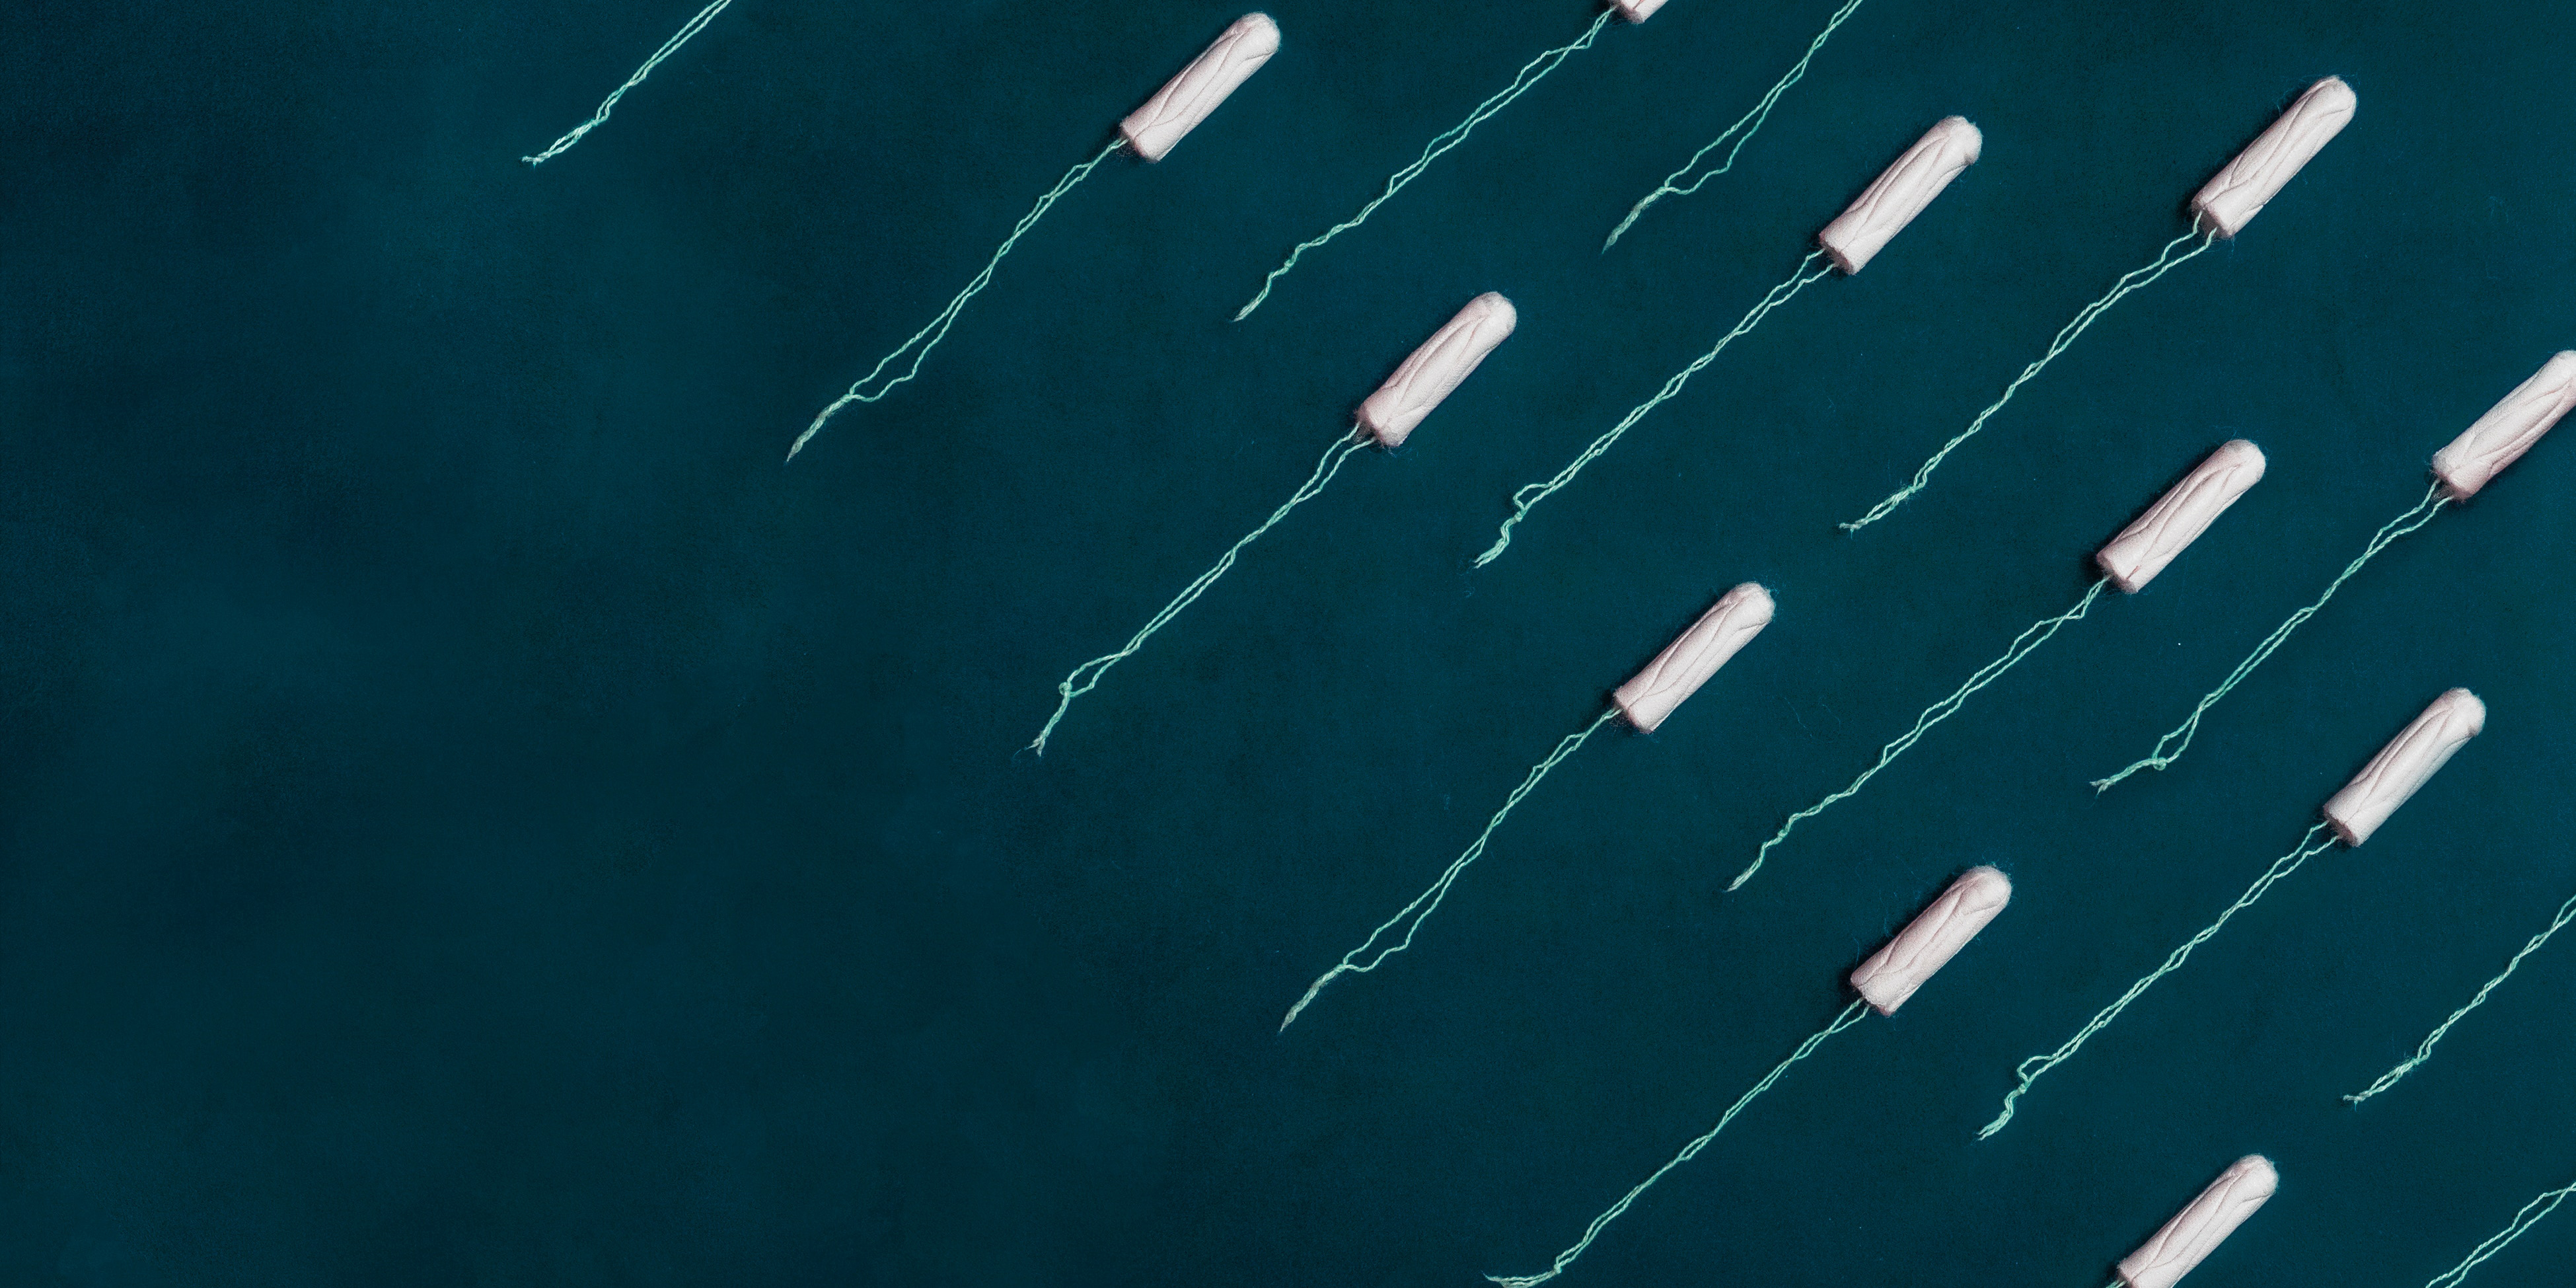 Unwrapped tampons arranged in rows against a teal background